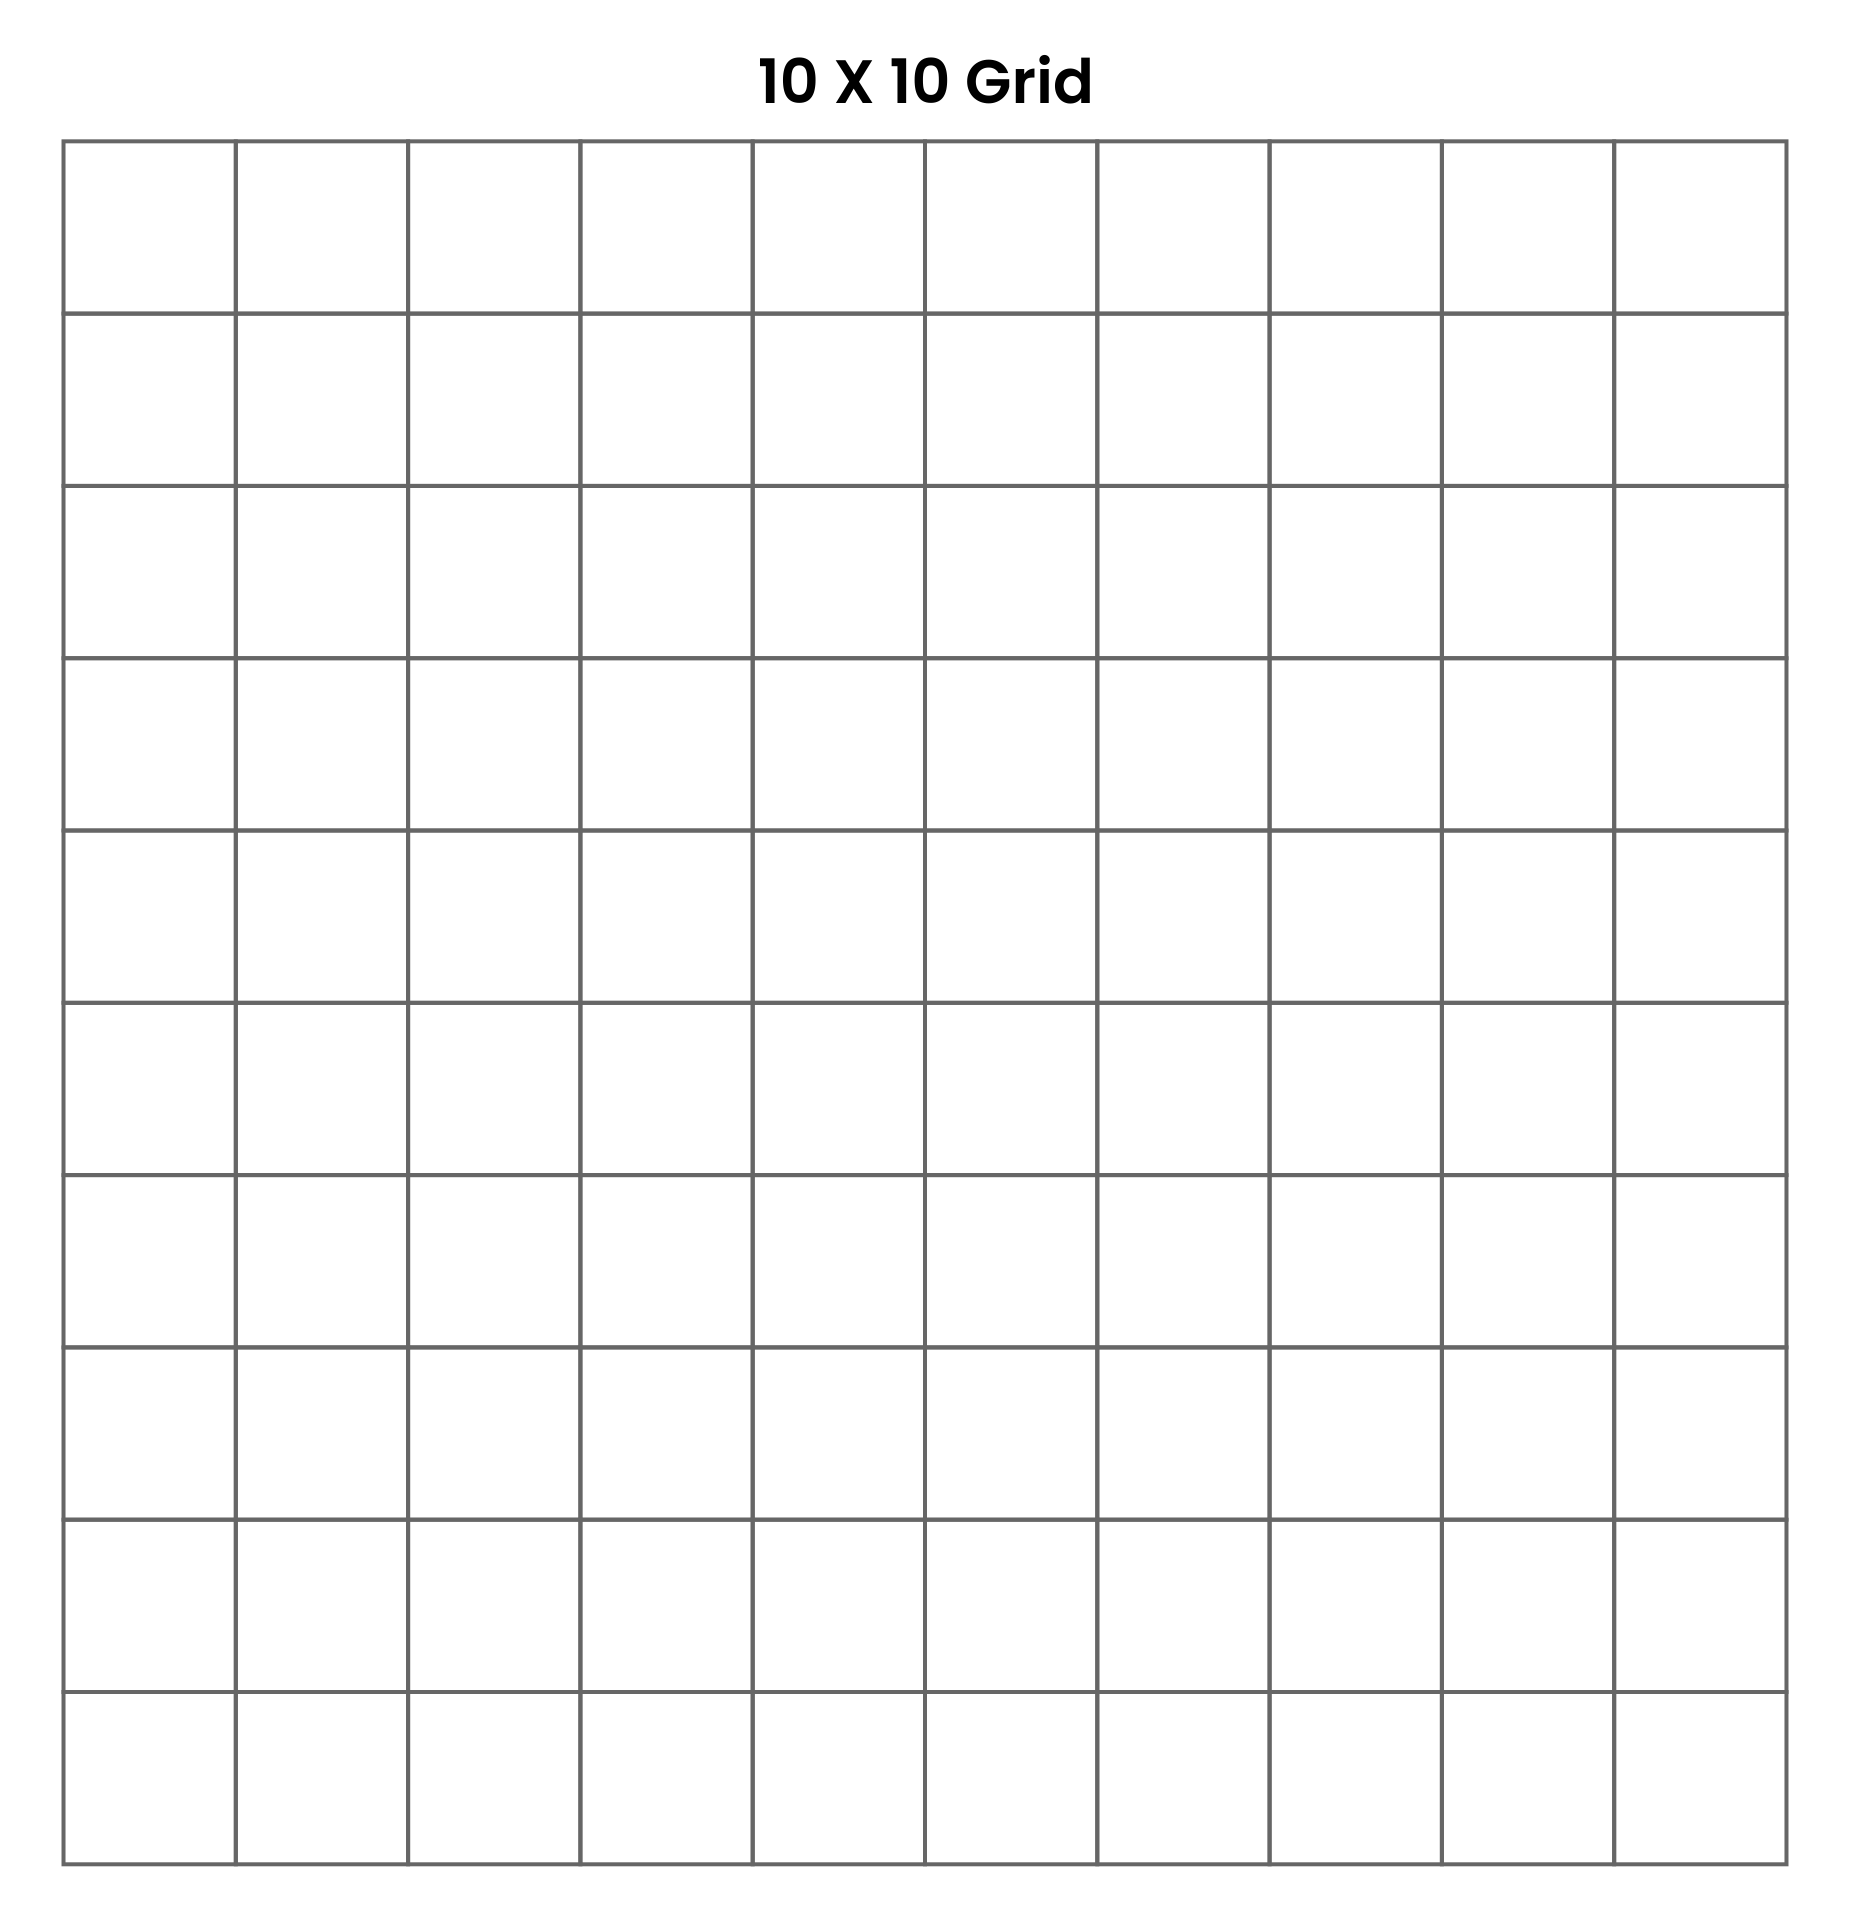 of 10 By 10 Grids Printable - Blank 100 Square Grid Paper, Printable ...